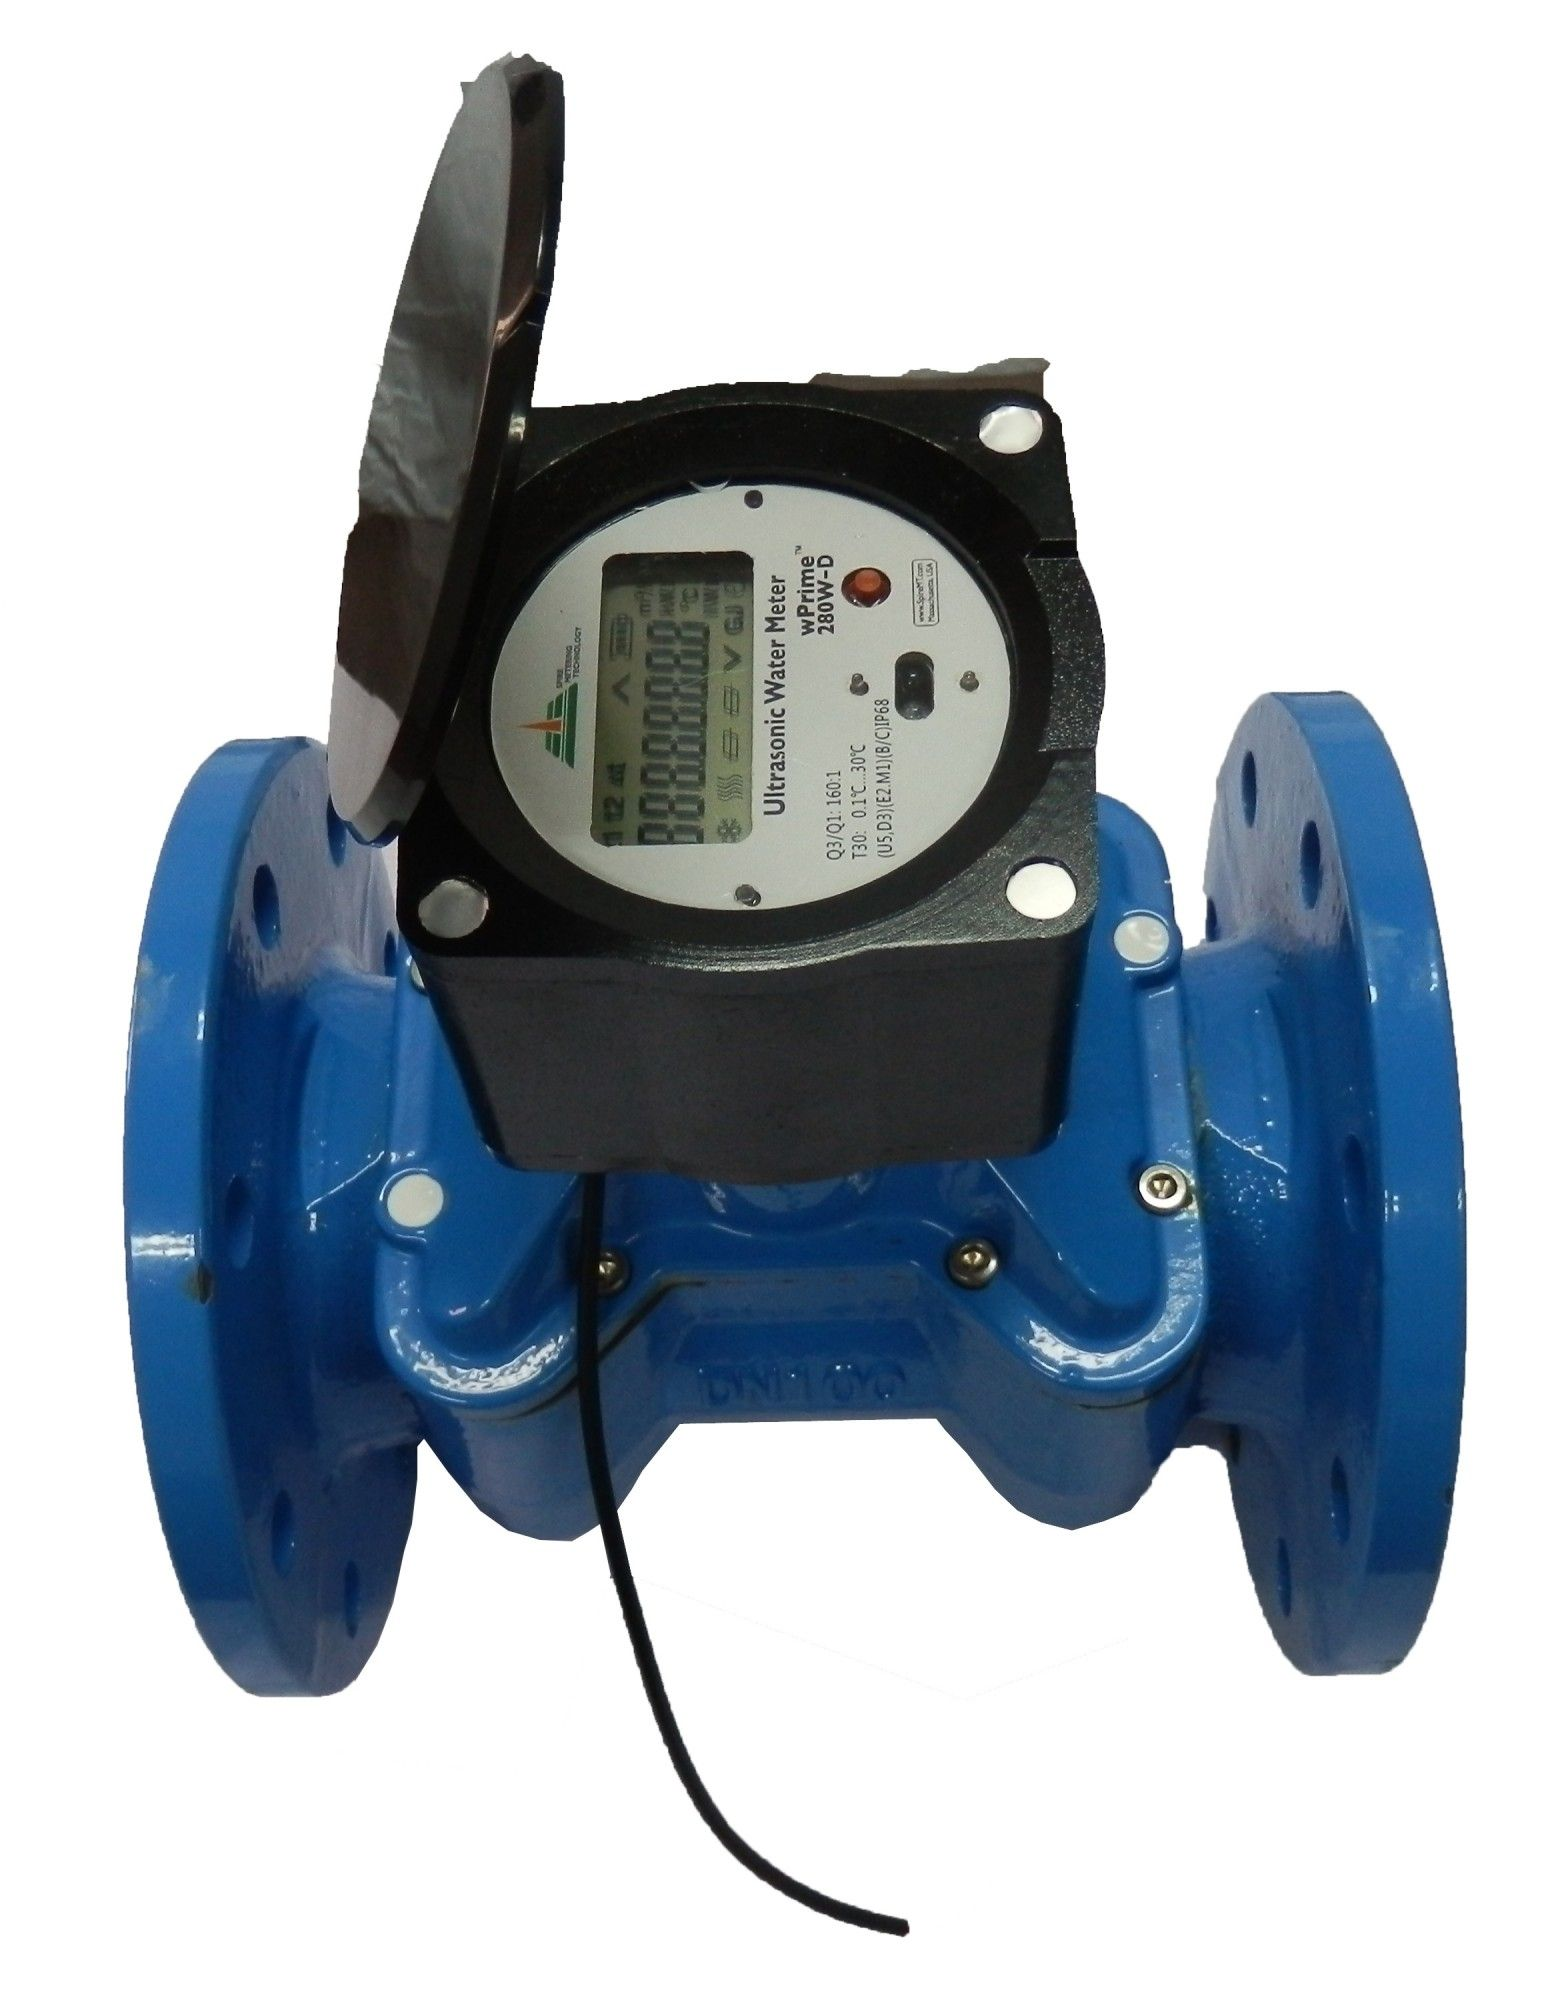 Choose a new range of ultrasonicwatermeters and